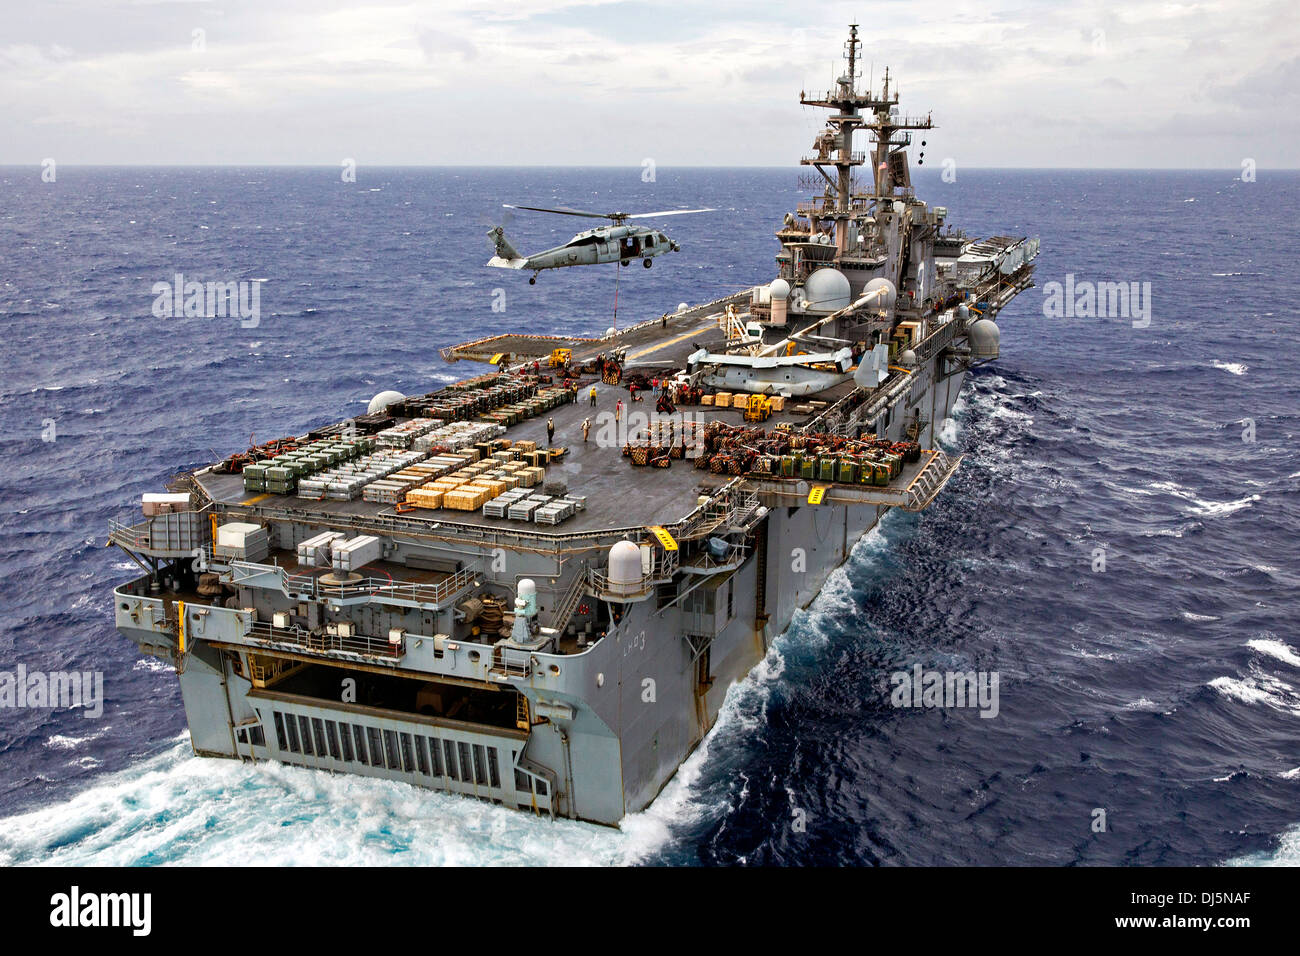 The US Navy amphibious assault ship USS Kearsarge conducts an ammunition offload October 30, 2013 in the Atlantic Stock Photo